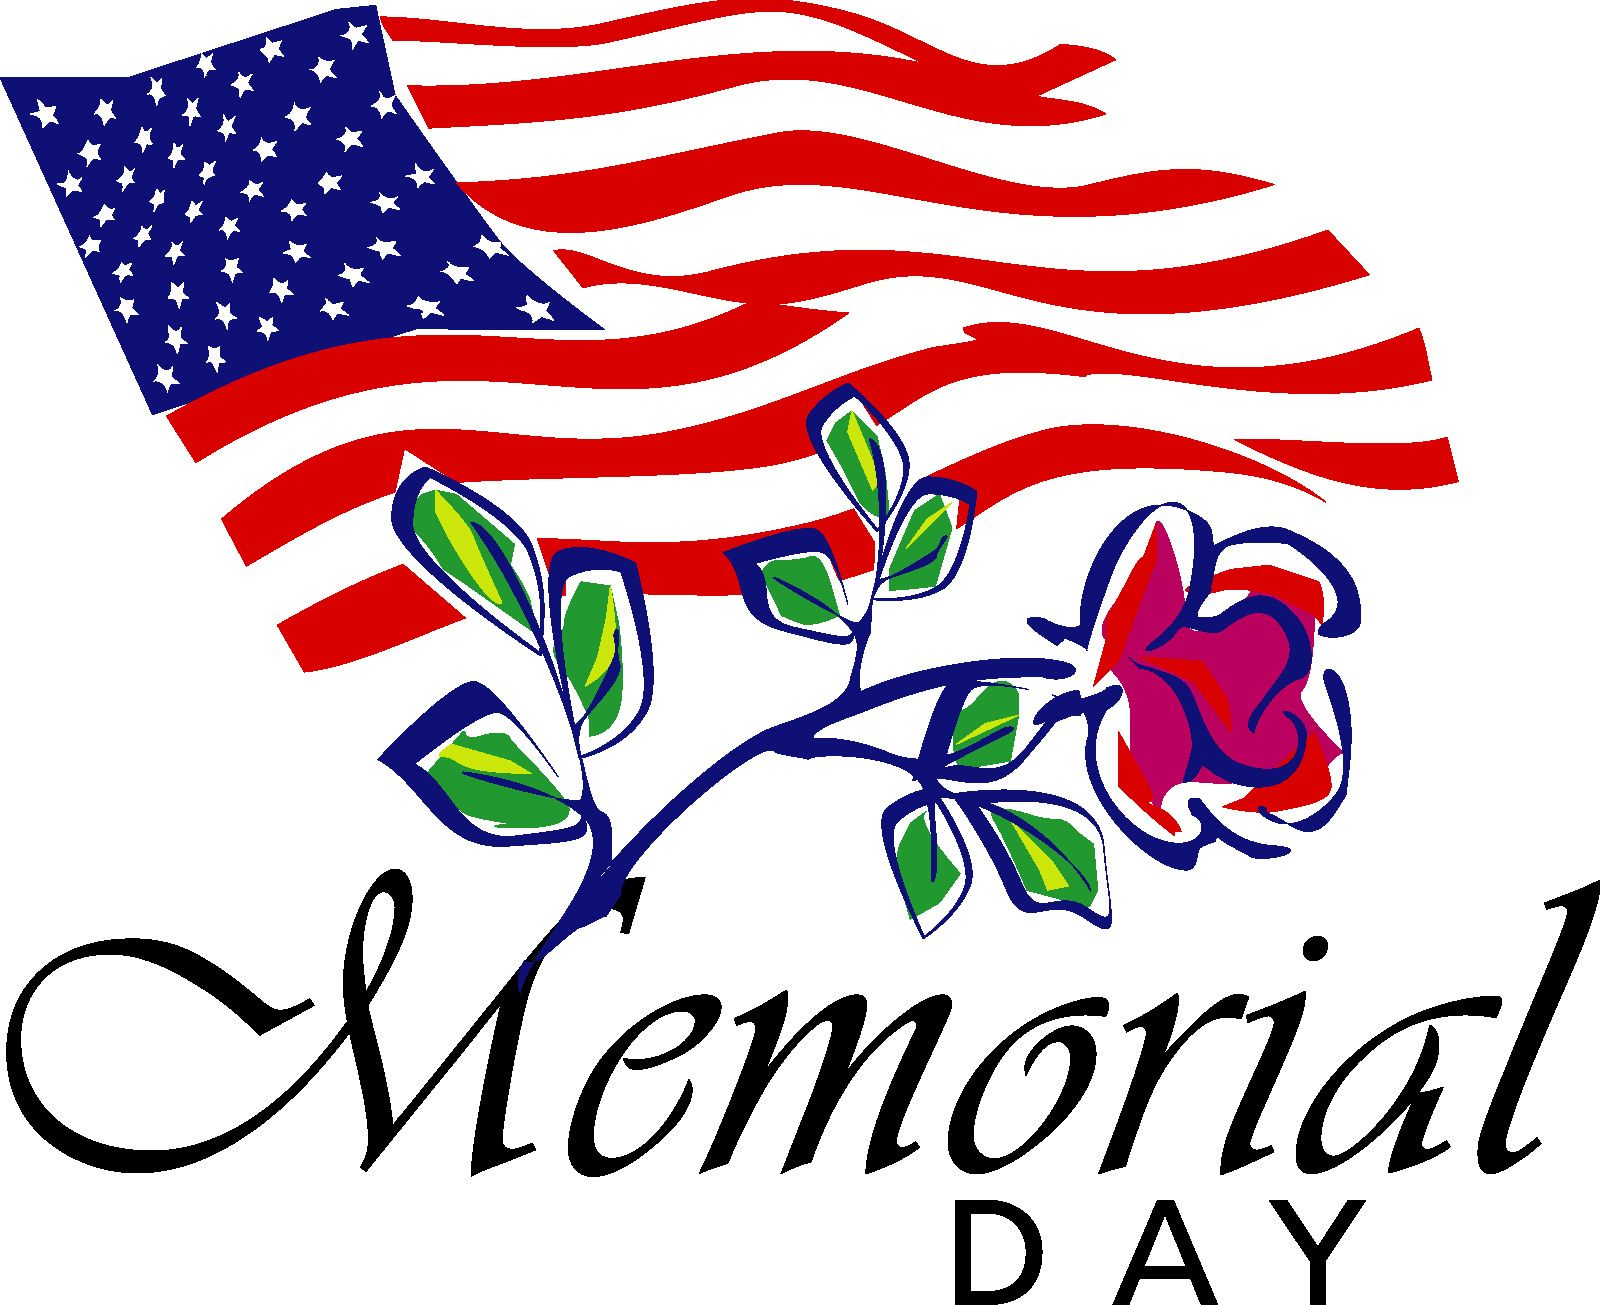 memorial day clip art free large images memorial day pinterest rh pinterest com memorial day clipart 2018 memorial day clipart for kids